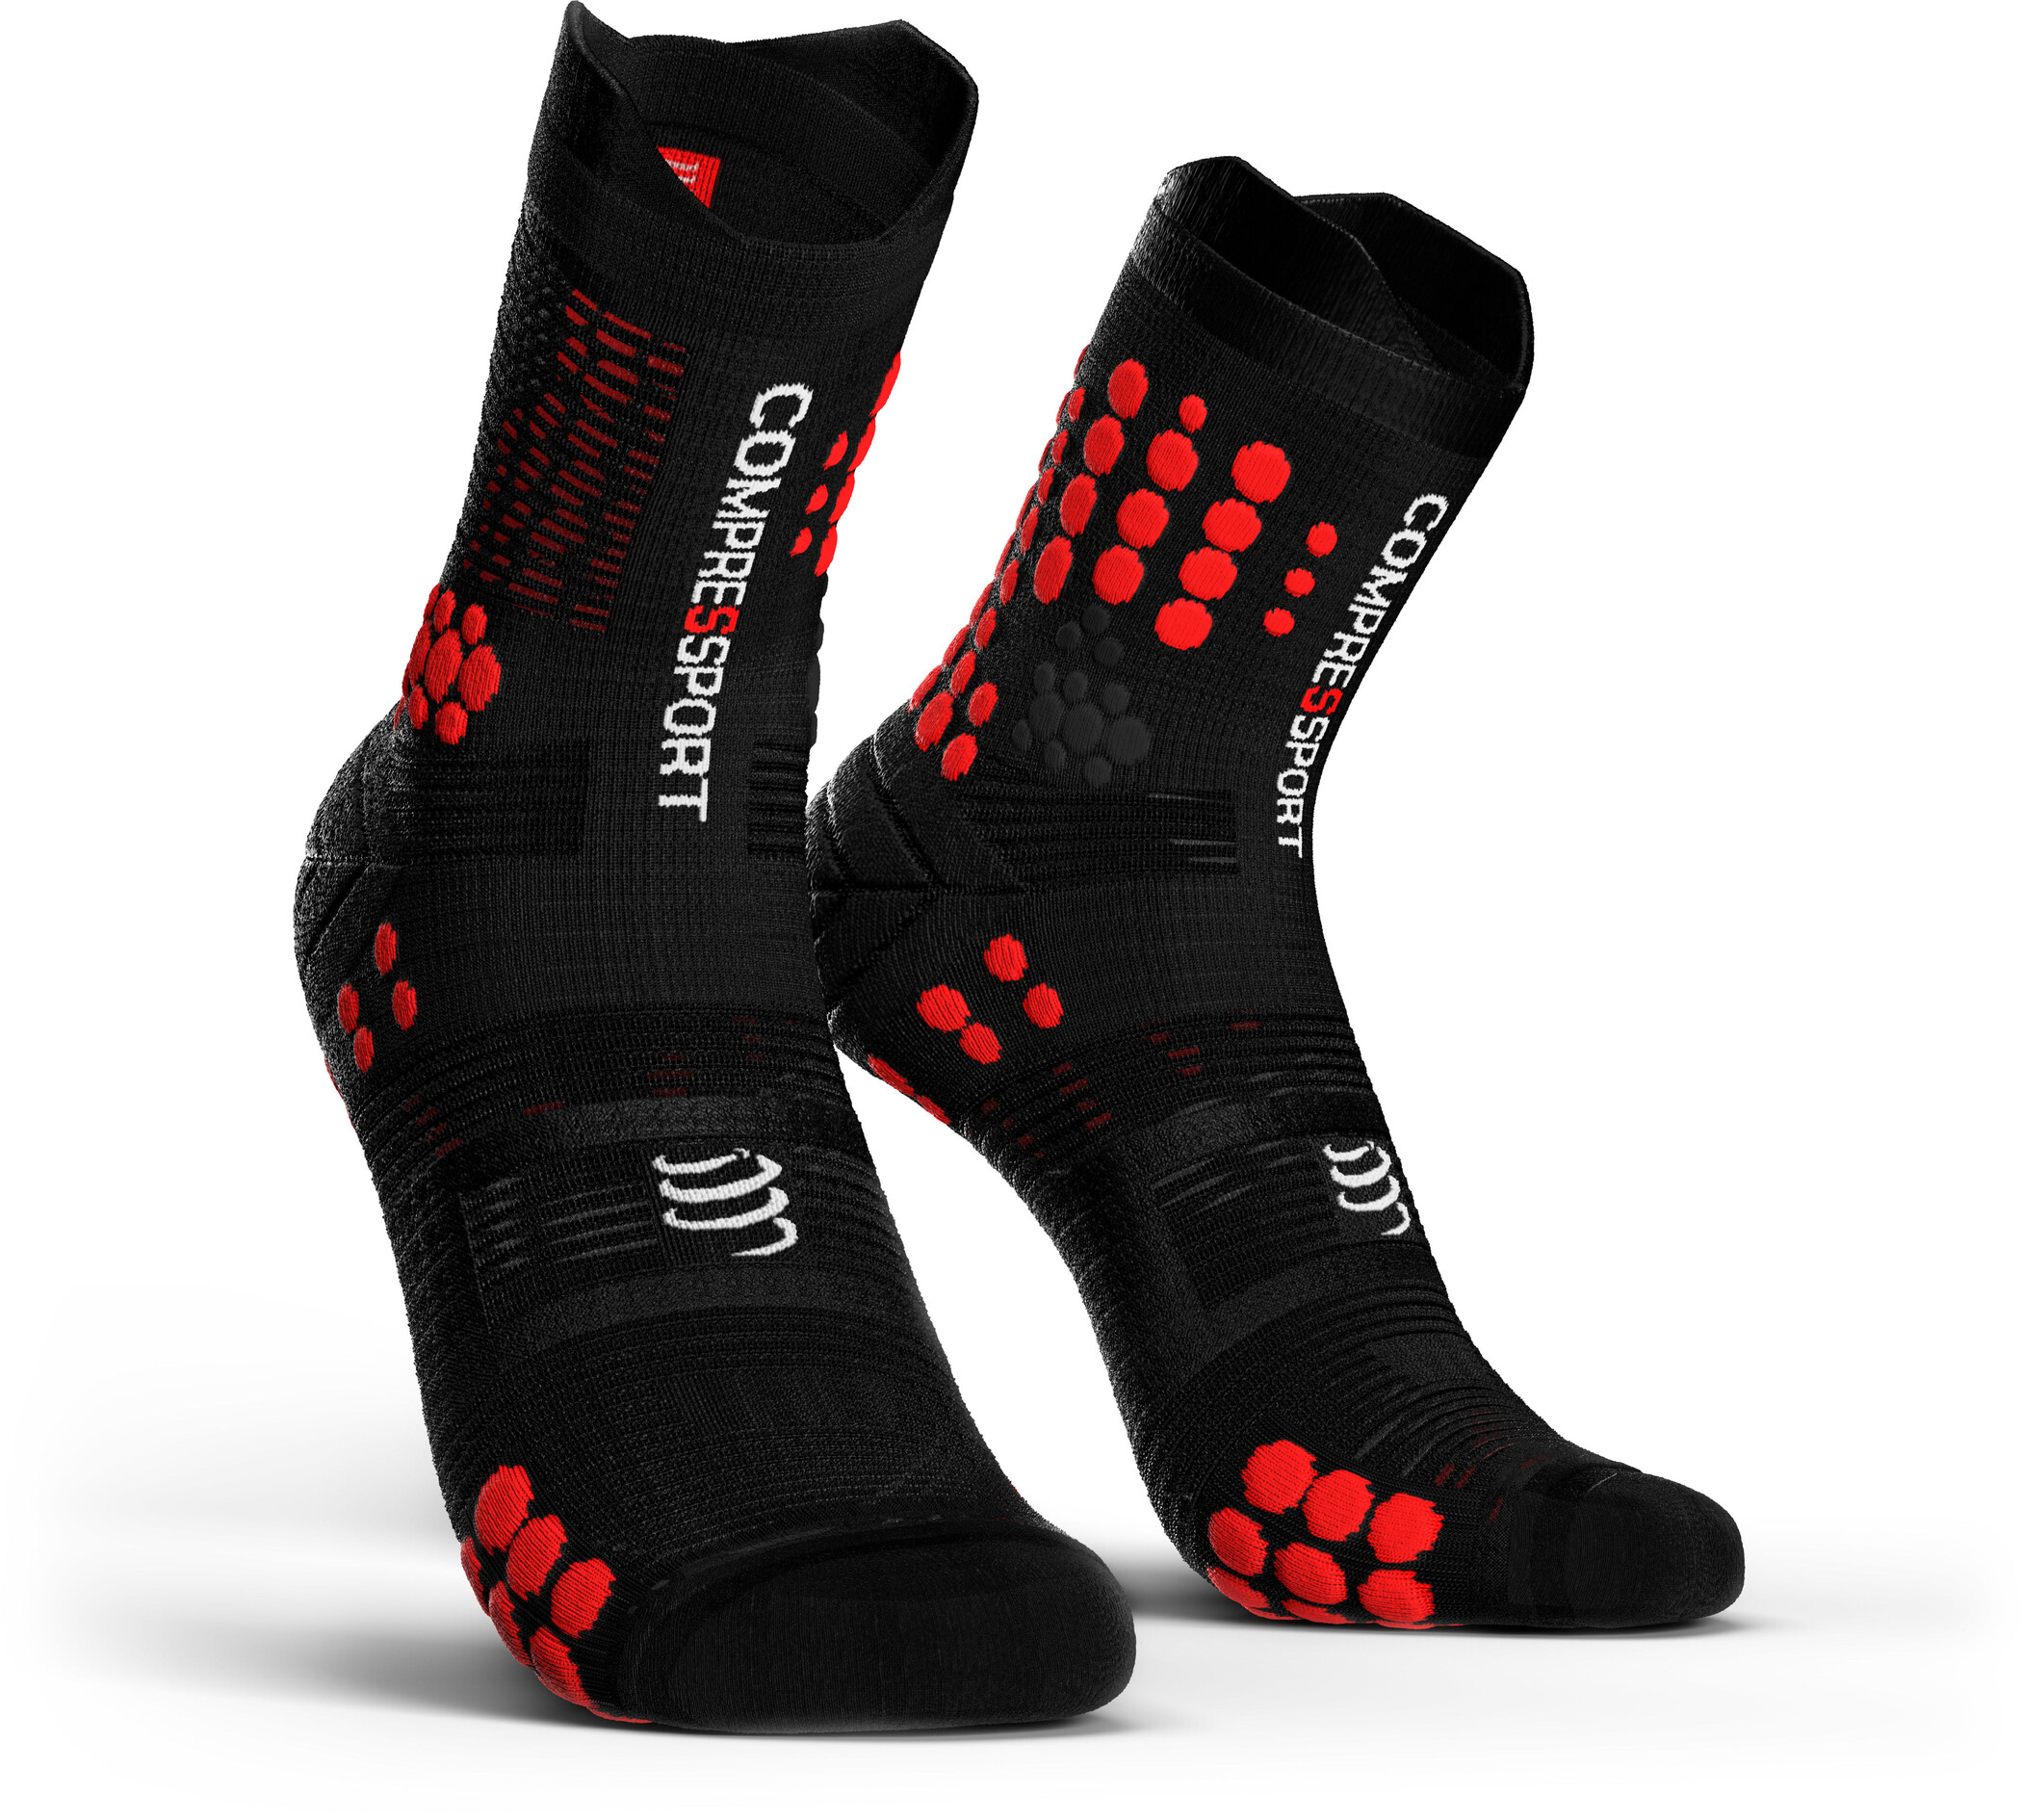 buy popular 35753 33875 Compressport Pro Racing V3 0 Trail Socks Black Red.jpg